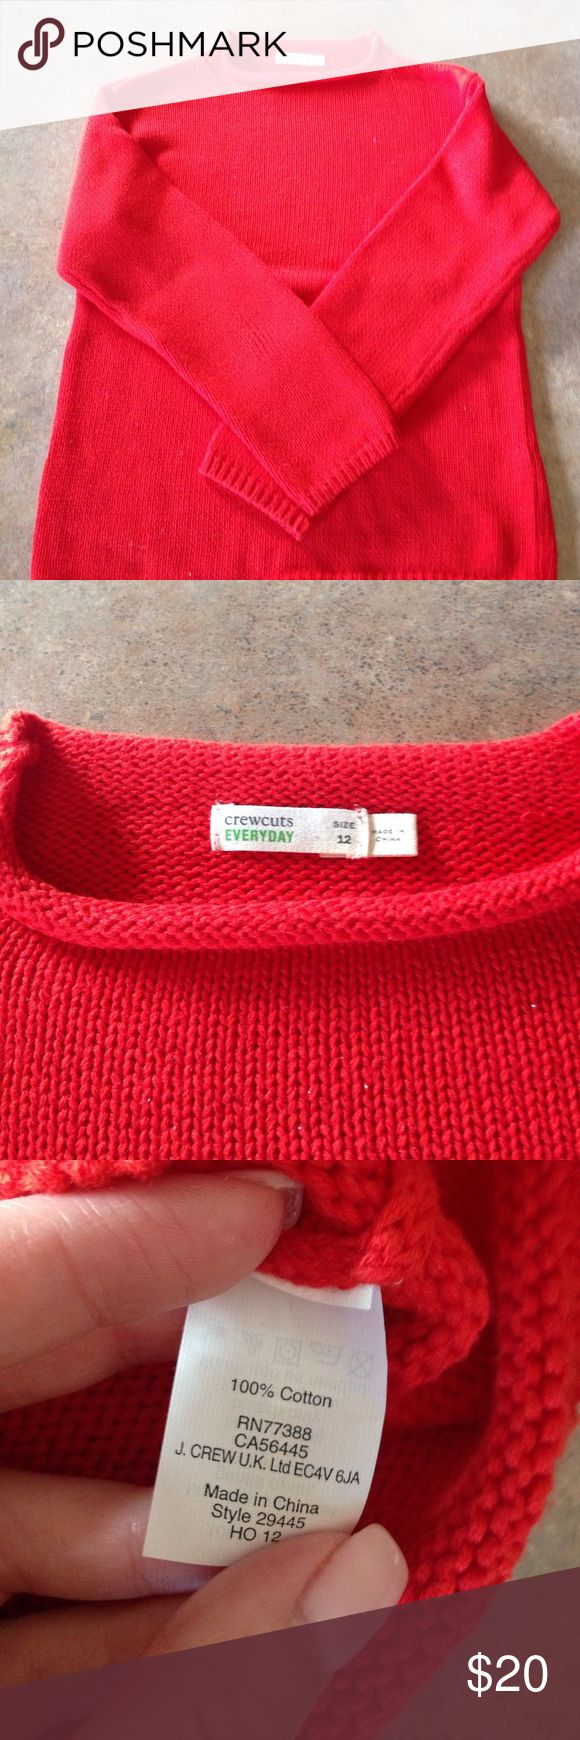 J crew kids orange/red cotton sweater! NWOT, in perfect condition! J Crew Kids Shirts & Tops Sweaters